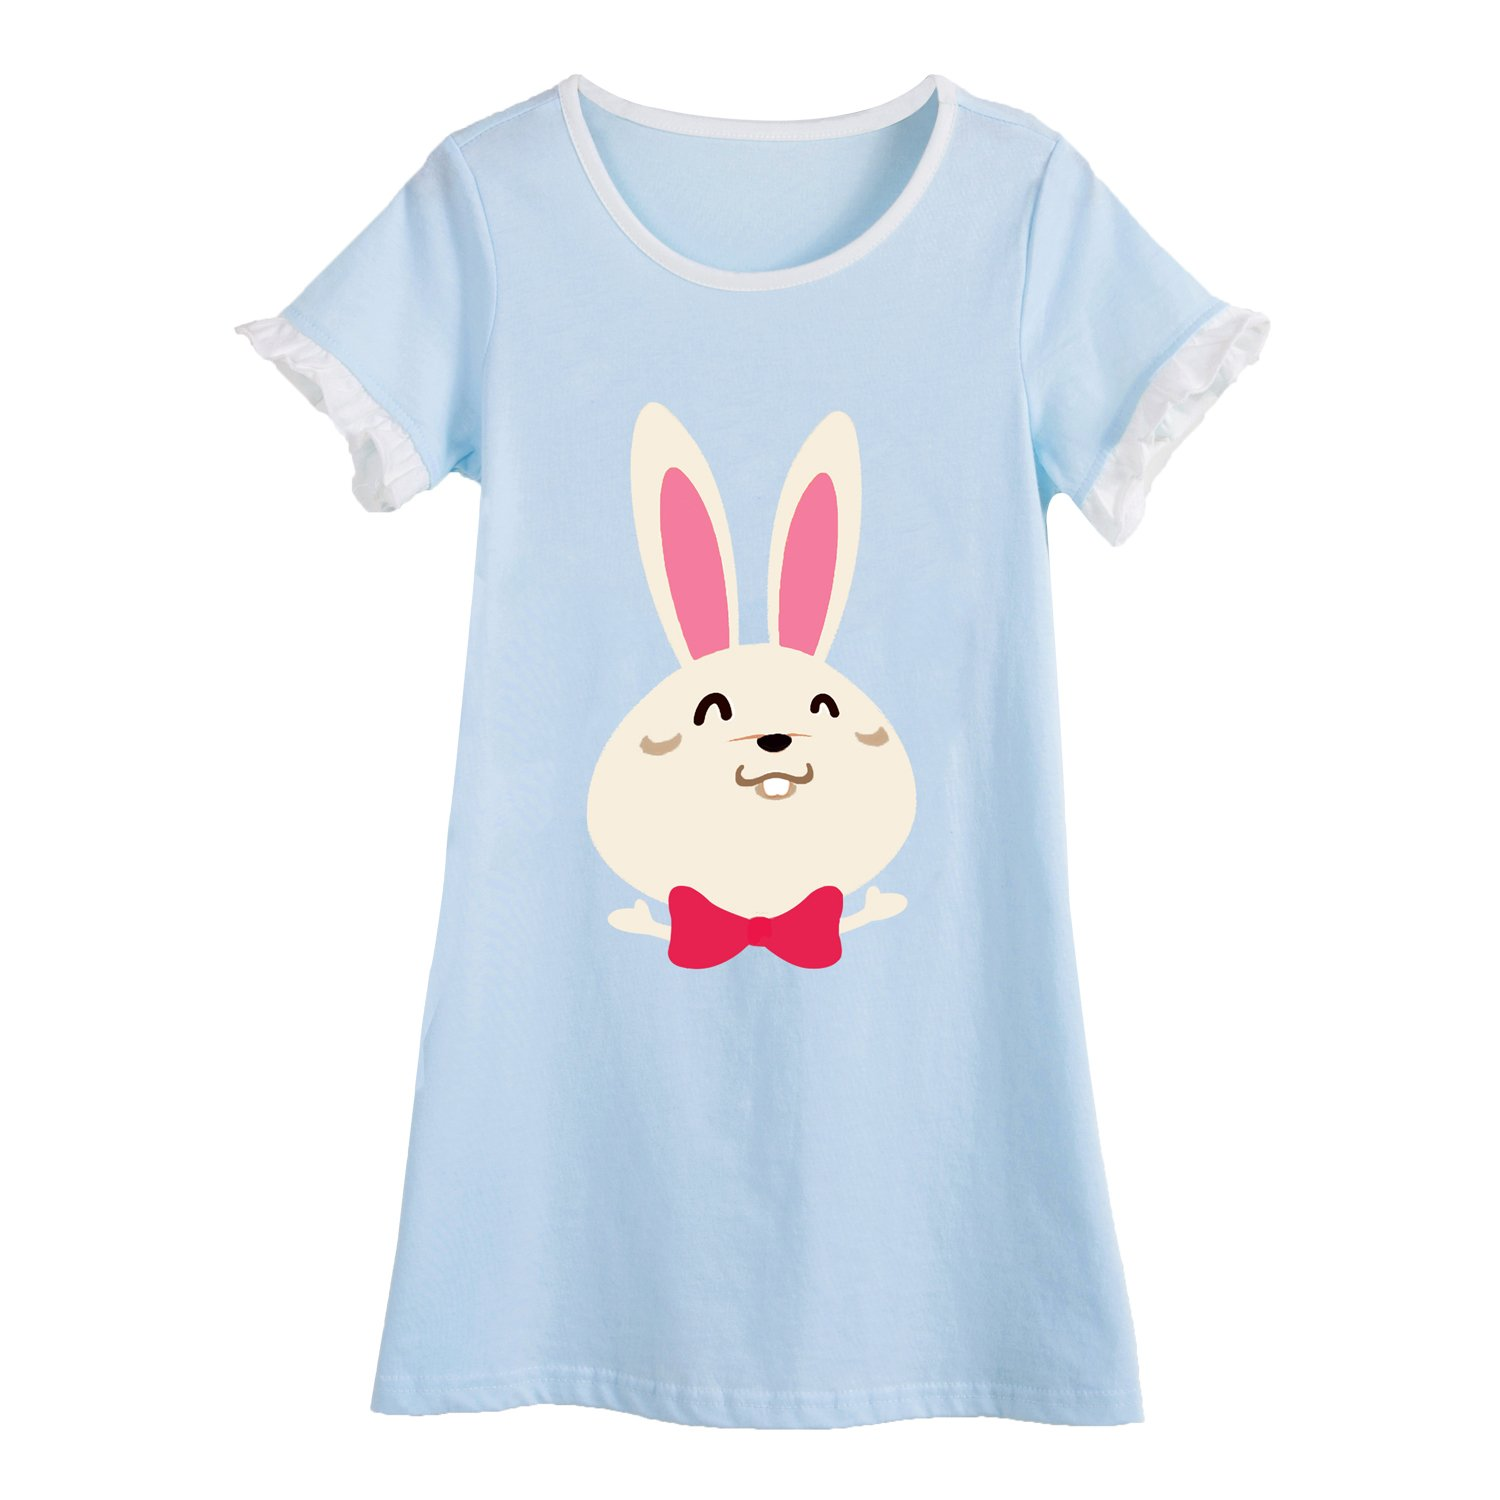 Allmeingeld Girls' Bunny Nightgowns Rabbit Sleep Shirts Lace Sleepwear for 3-10 Years